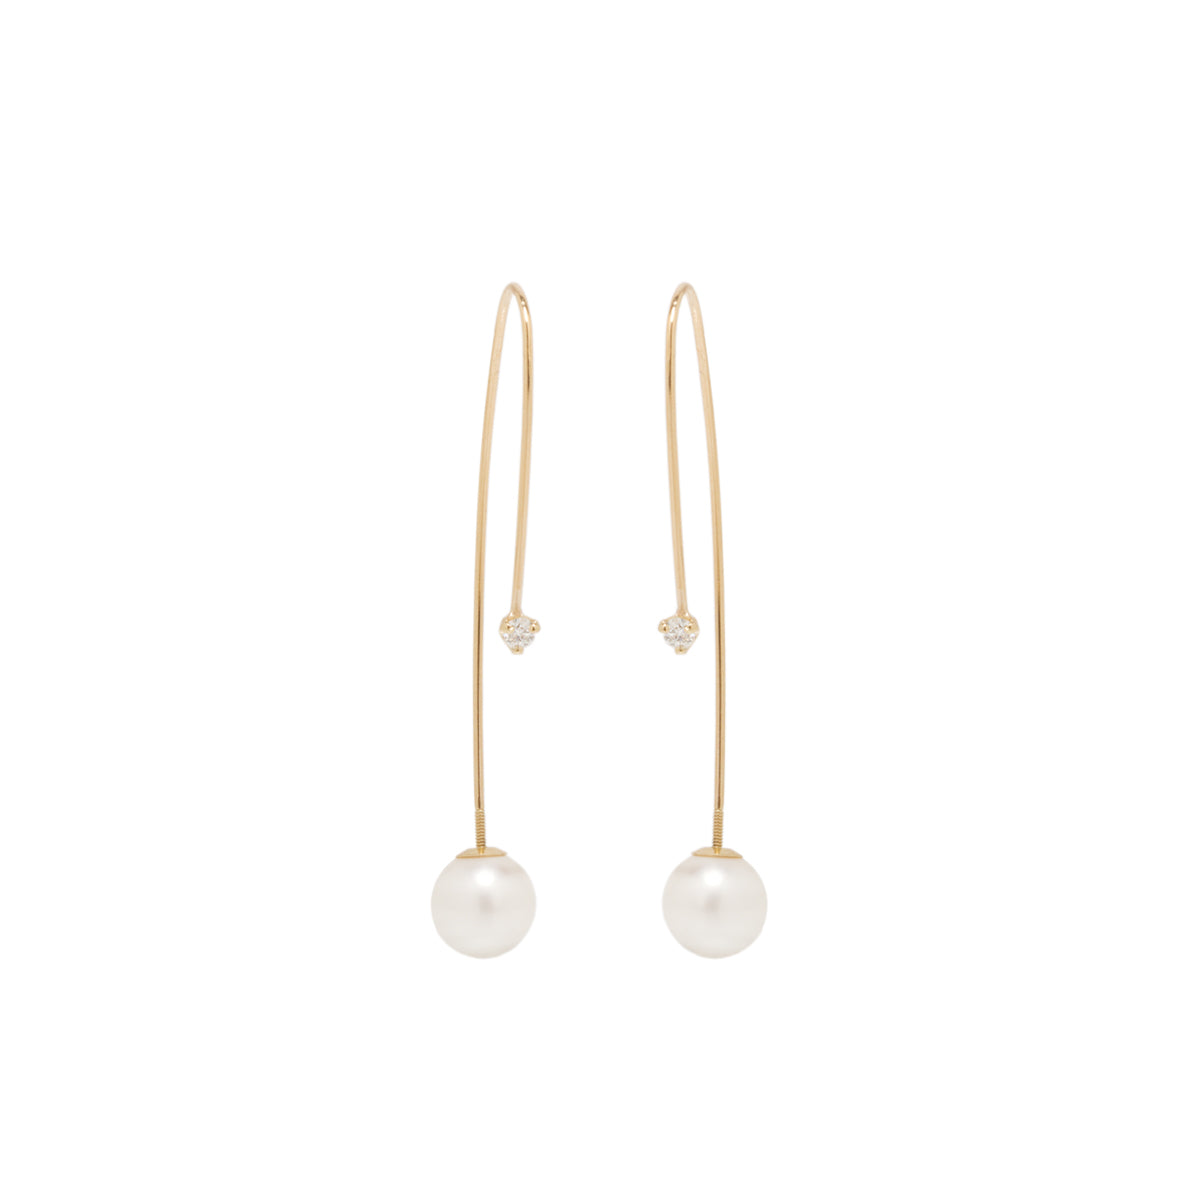 14k diamond and pearl screw back threaders